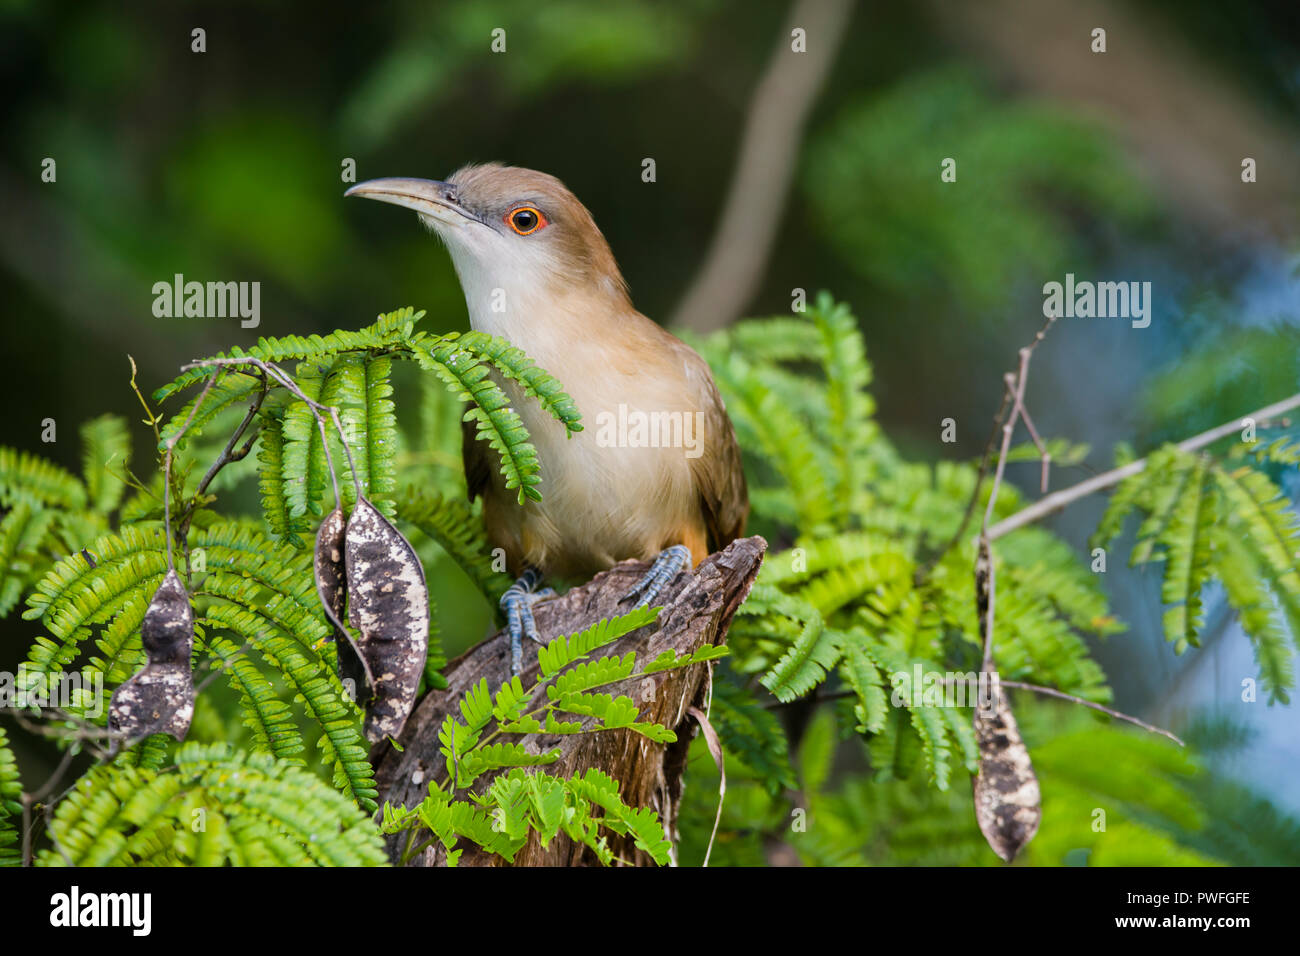 A Great Lizard-Cuckoo (Coccyzus merlini) perched on a stump. Bermejas Forest Reserve, Cuba. - Stock Image